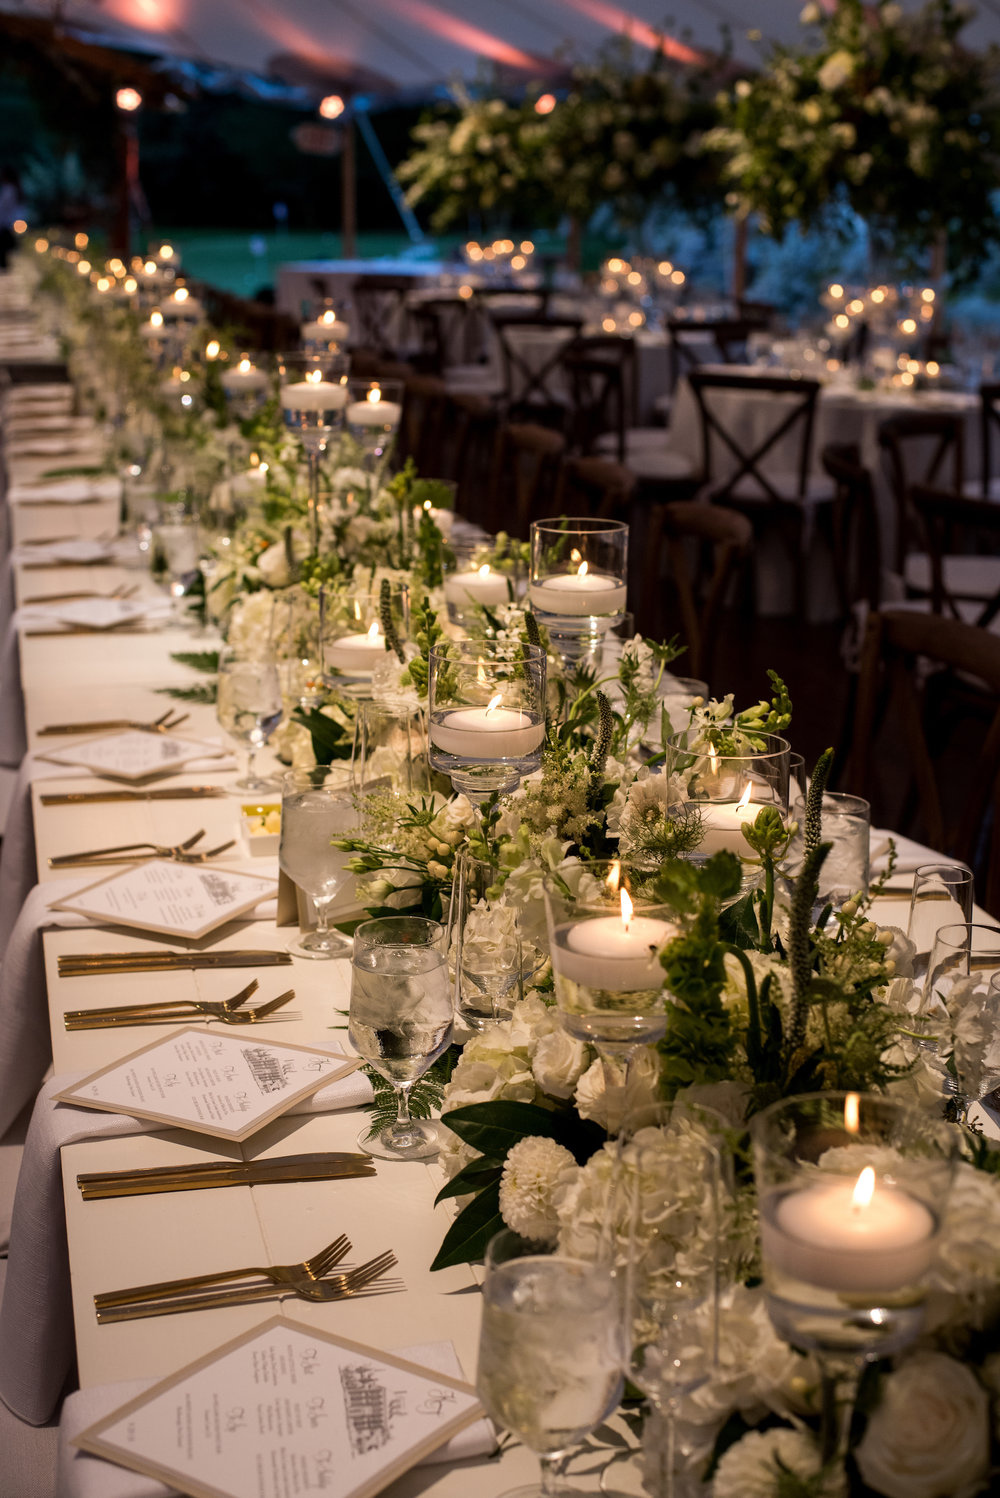 KATY-AND-TOM-HINGHAM-MASSACHUSETTS-WEDDING-DESTINATION-LUXURY-WEDDING-CATHOLIC-CHURCH-BACK-YARD-SPERRY-SAIL-CLOTH-TENT-COASTAL-CHIC-TIMELESS-ROMANTIC-FARM-TABLES-CHANDELIERS-CUSTOM-MENU-LONG-TABLES-RECTANGULAR-TABLES